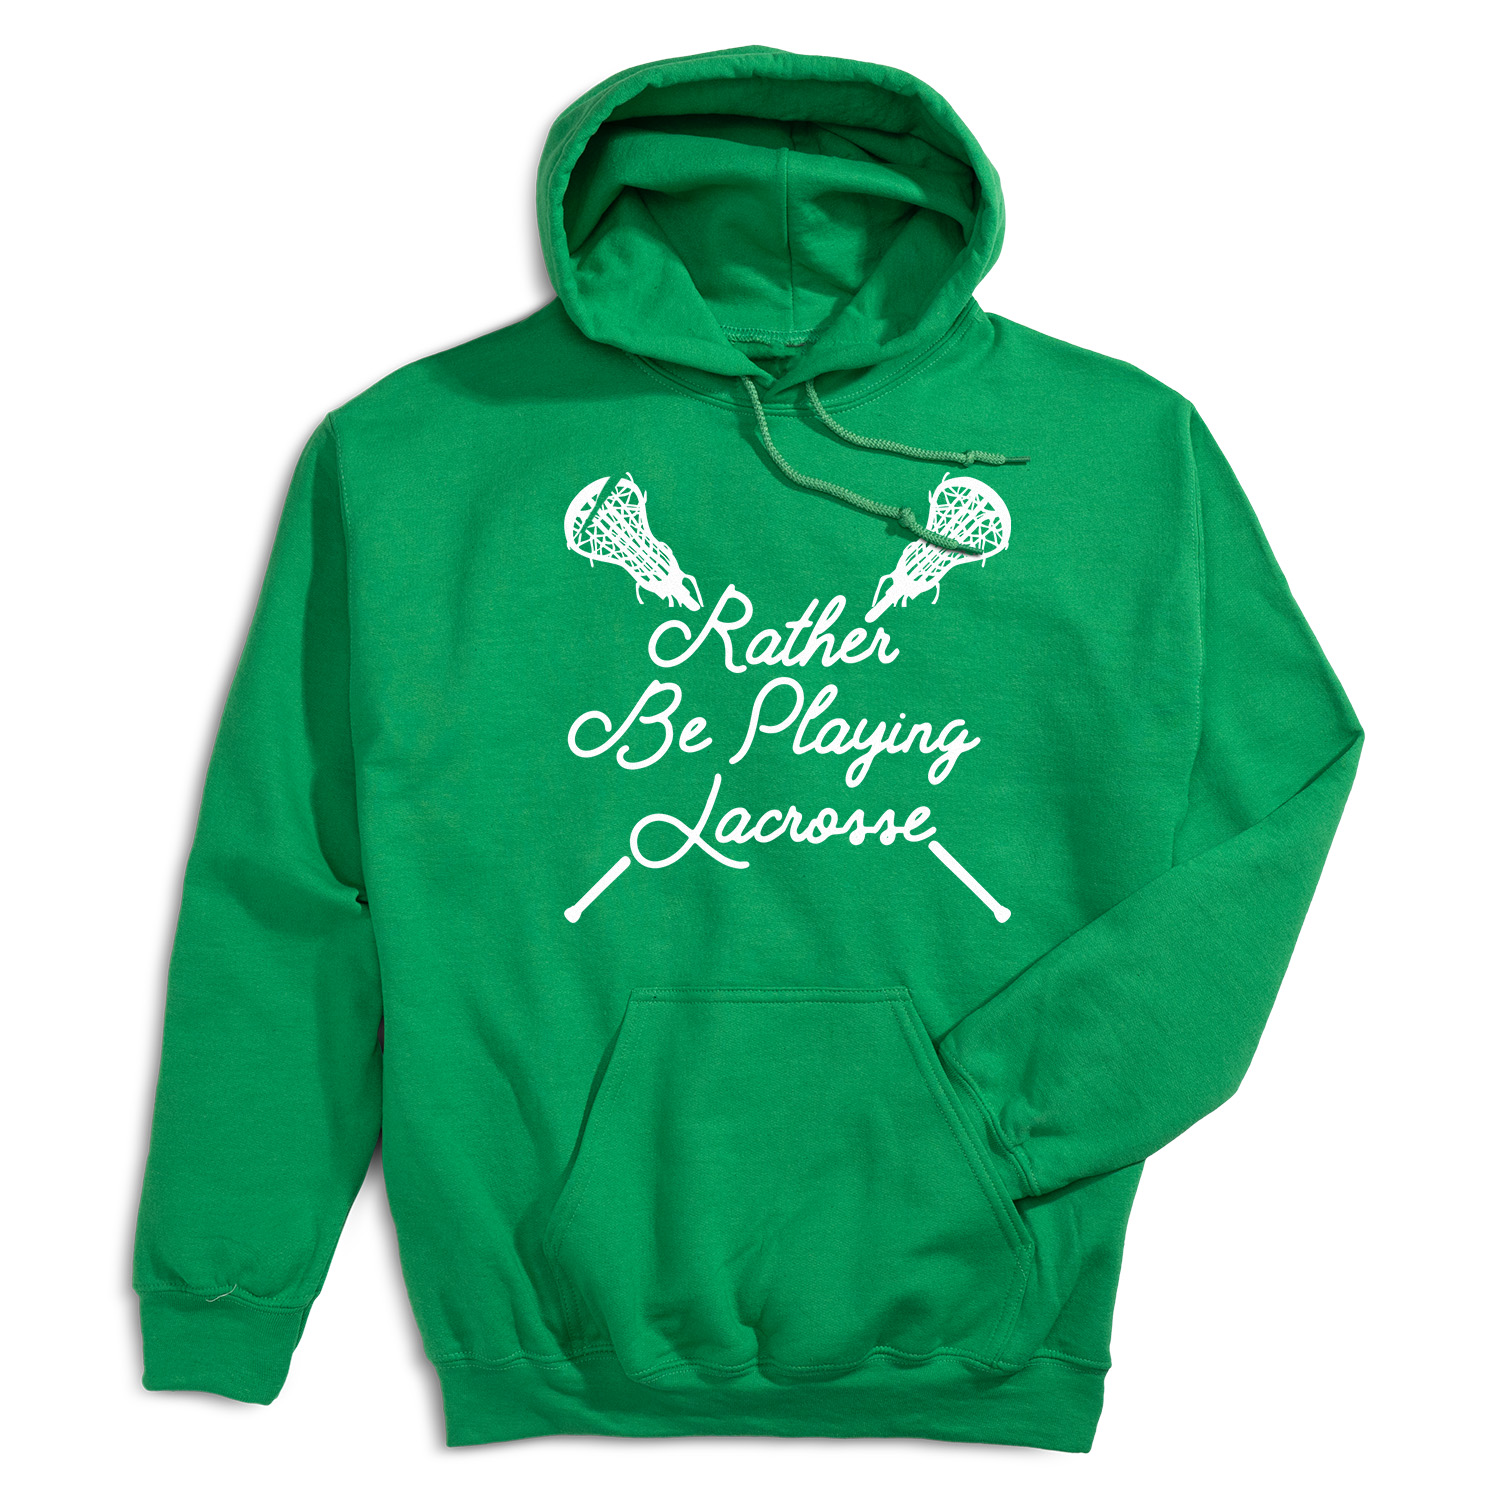 Girls Lacrosse Hooded Sweatshirt - Rather Be Playing Lacrosse - Personalization Image